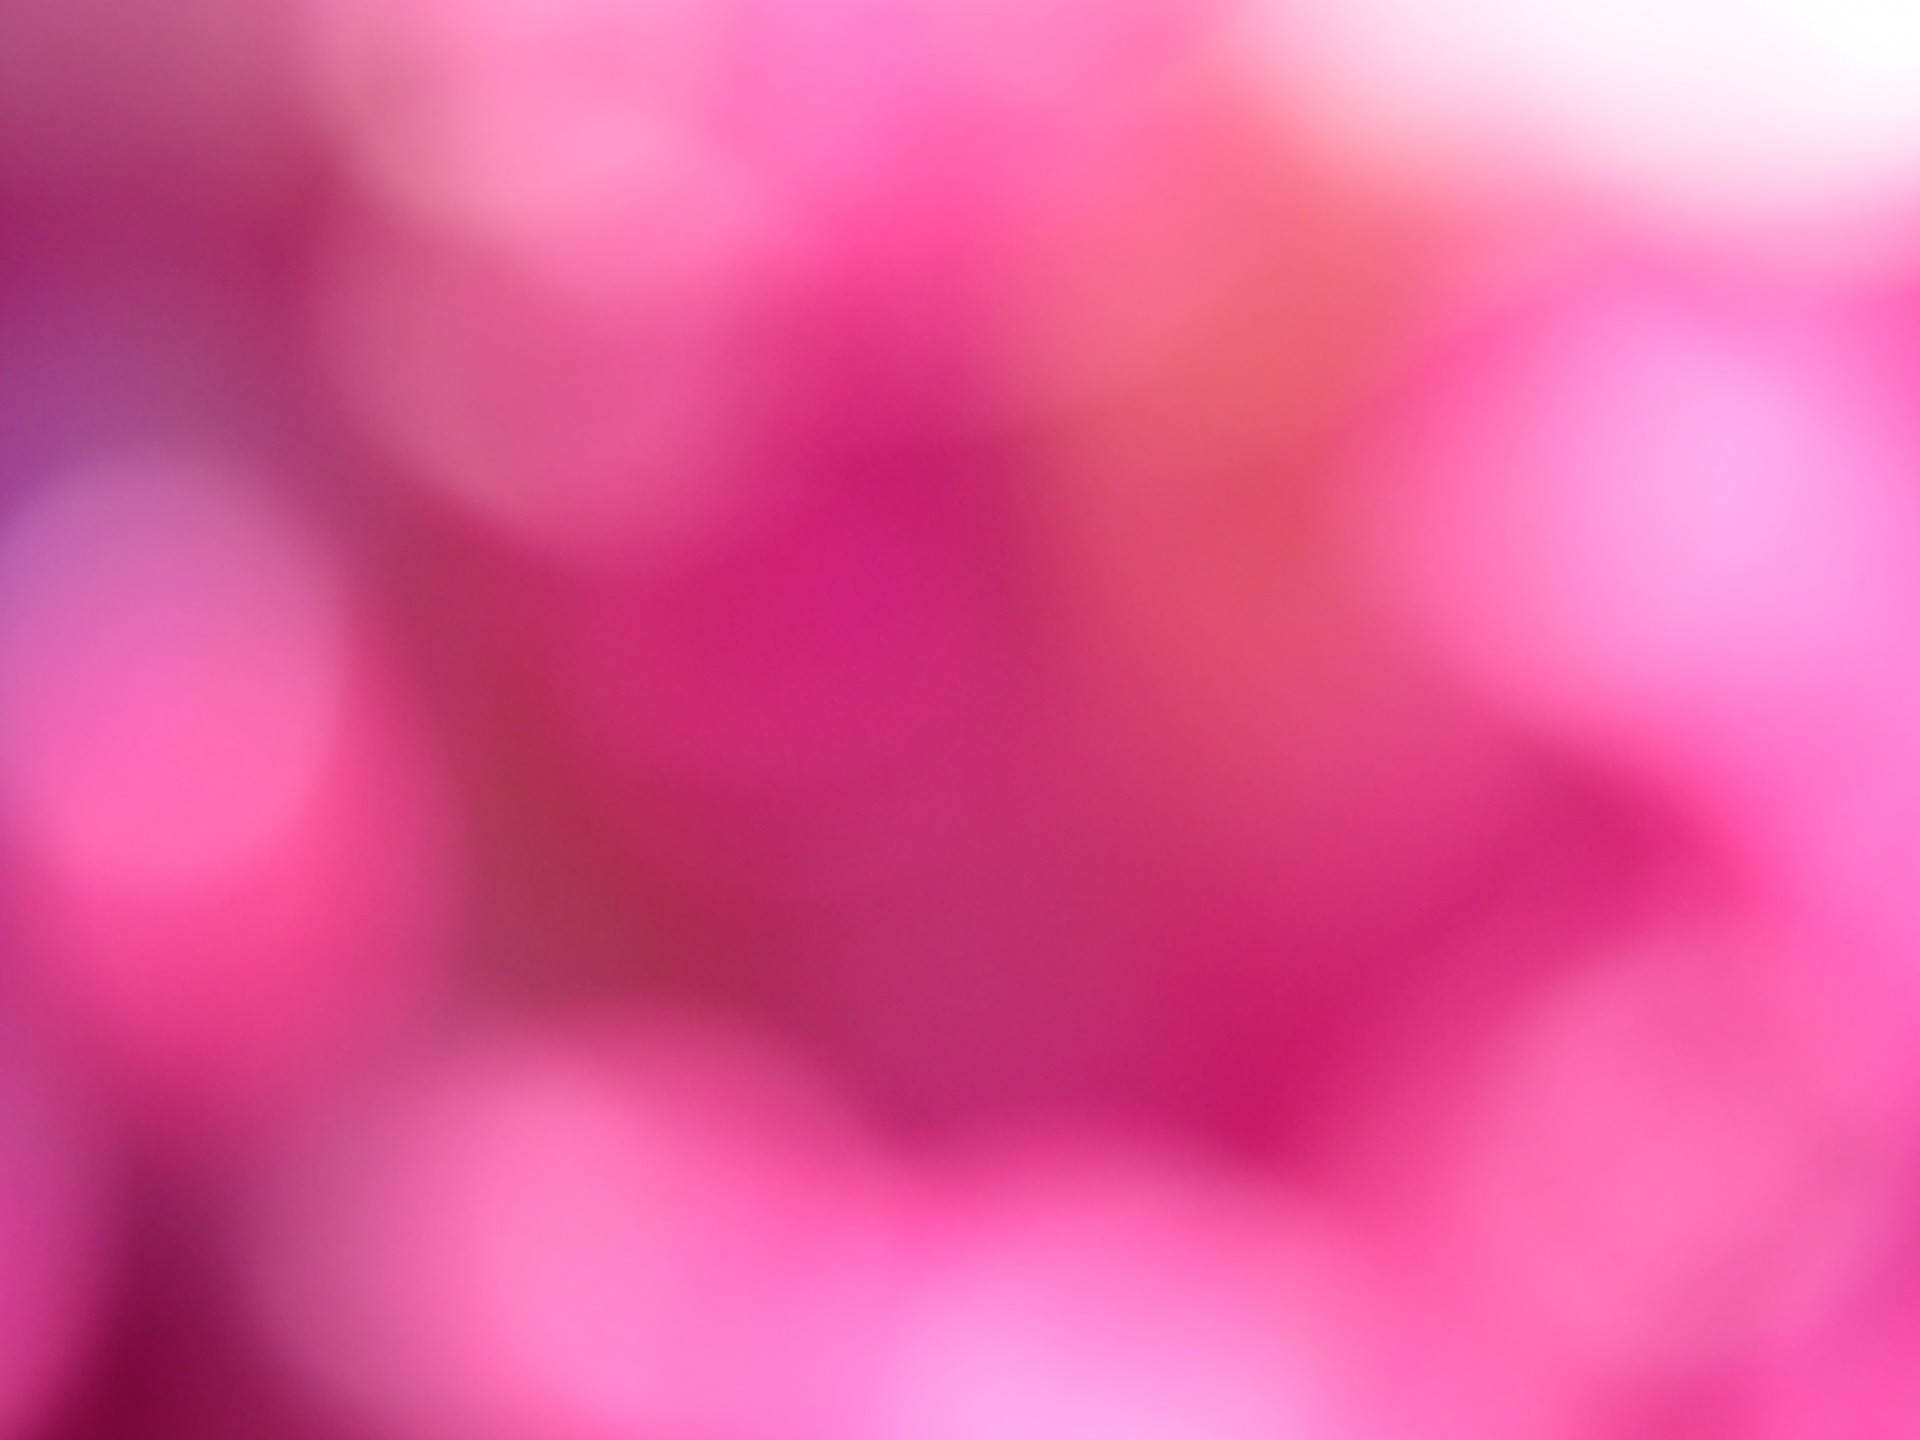 pink-bokeh-background